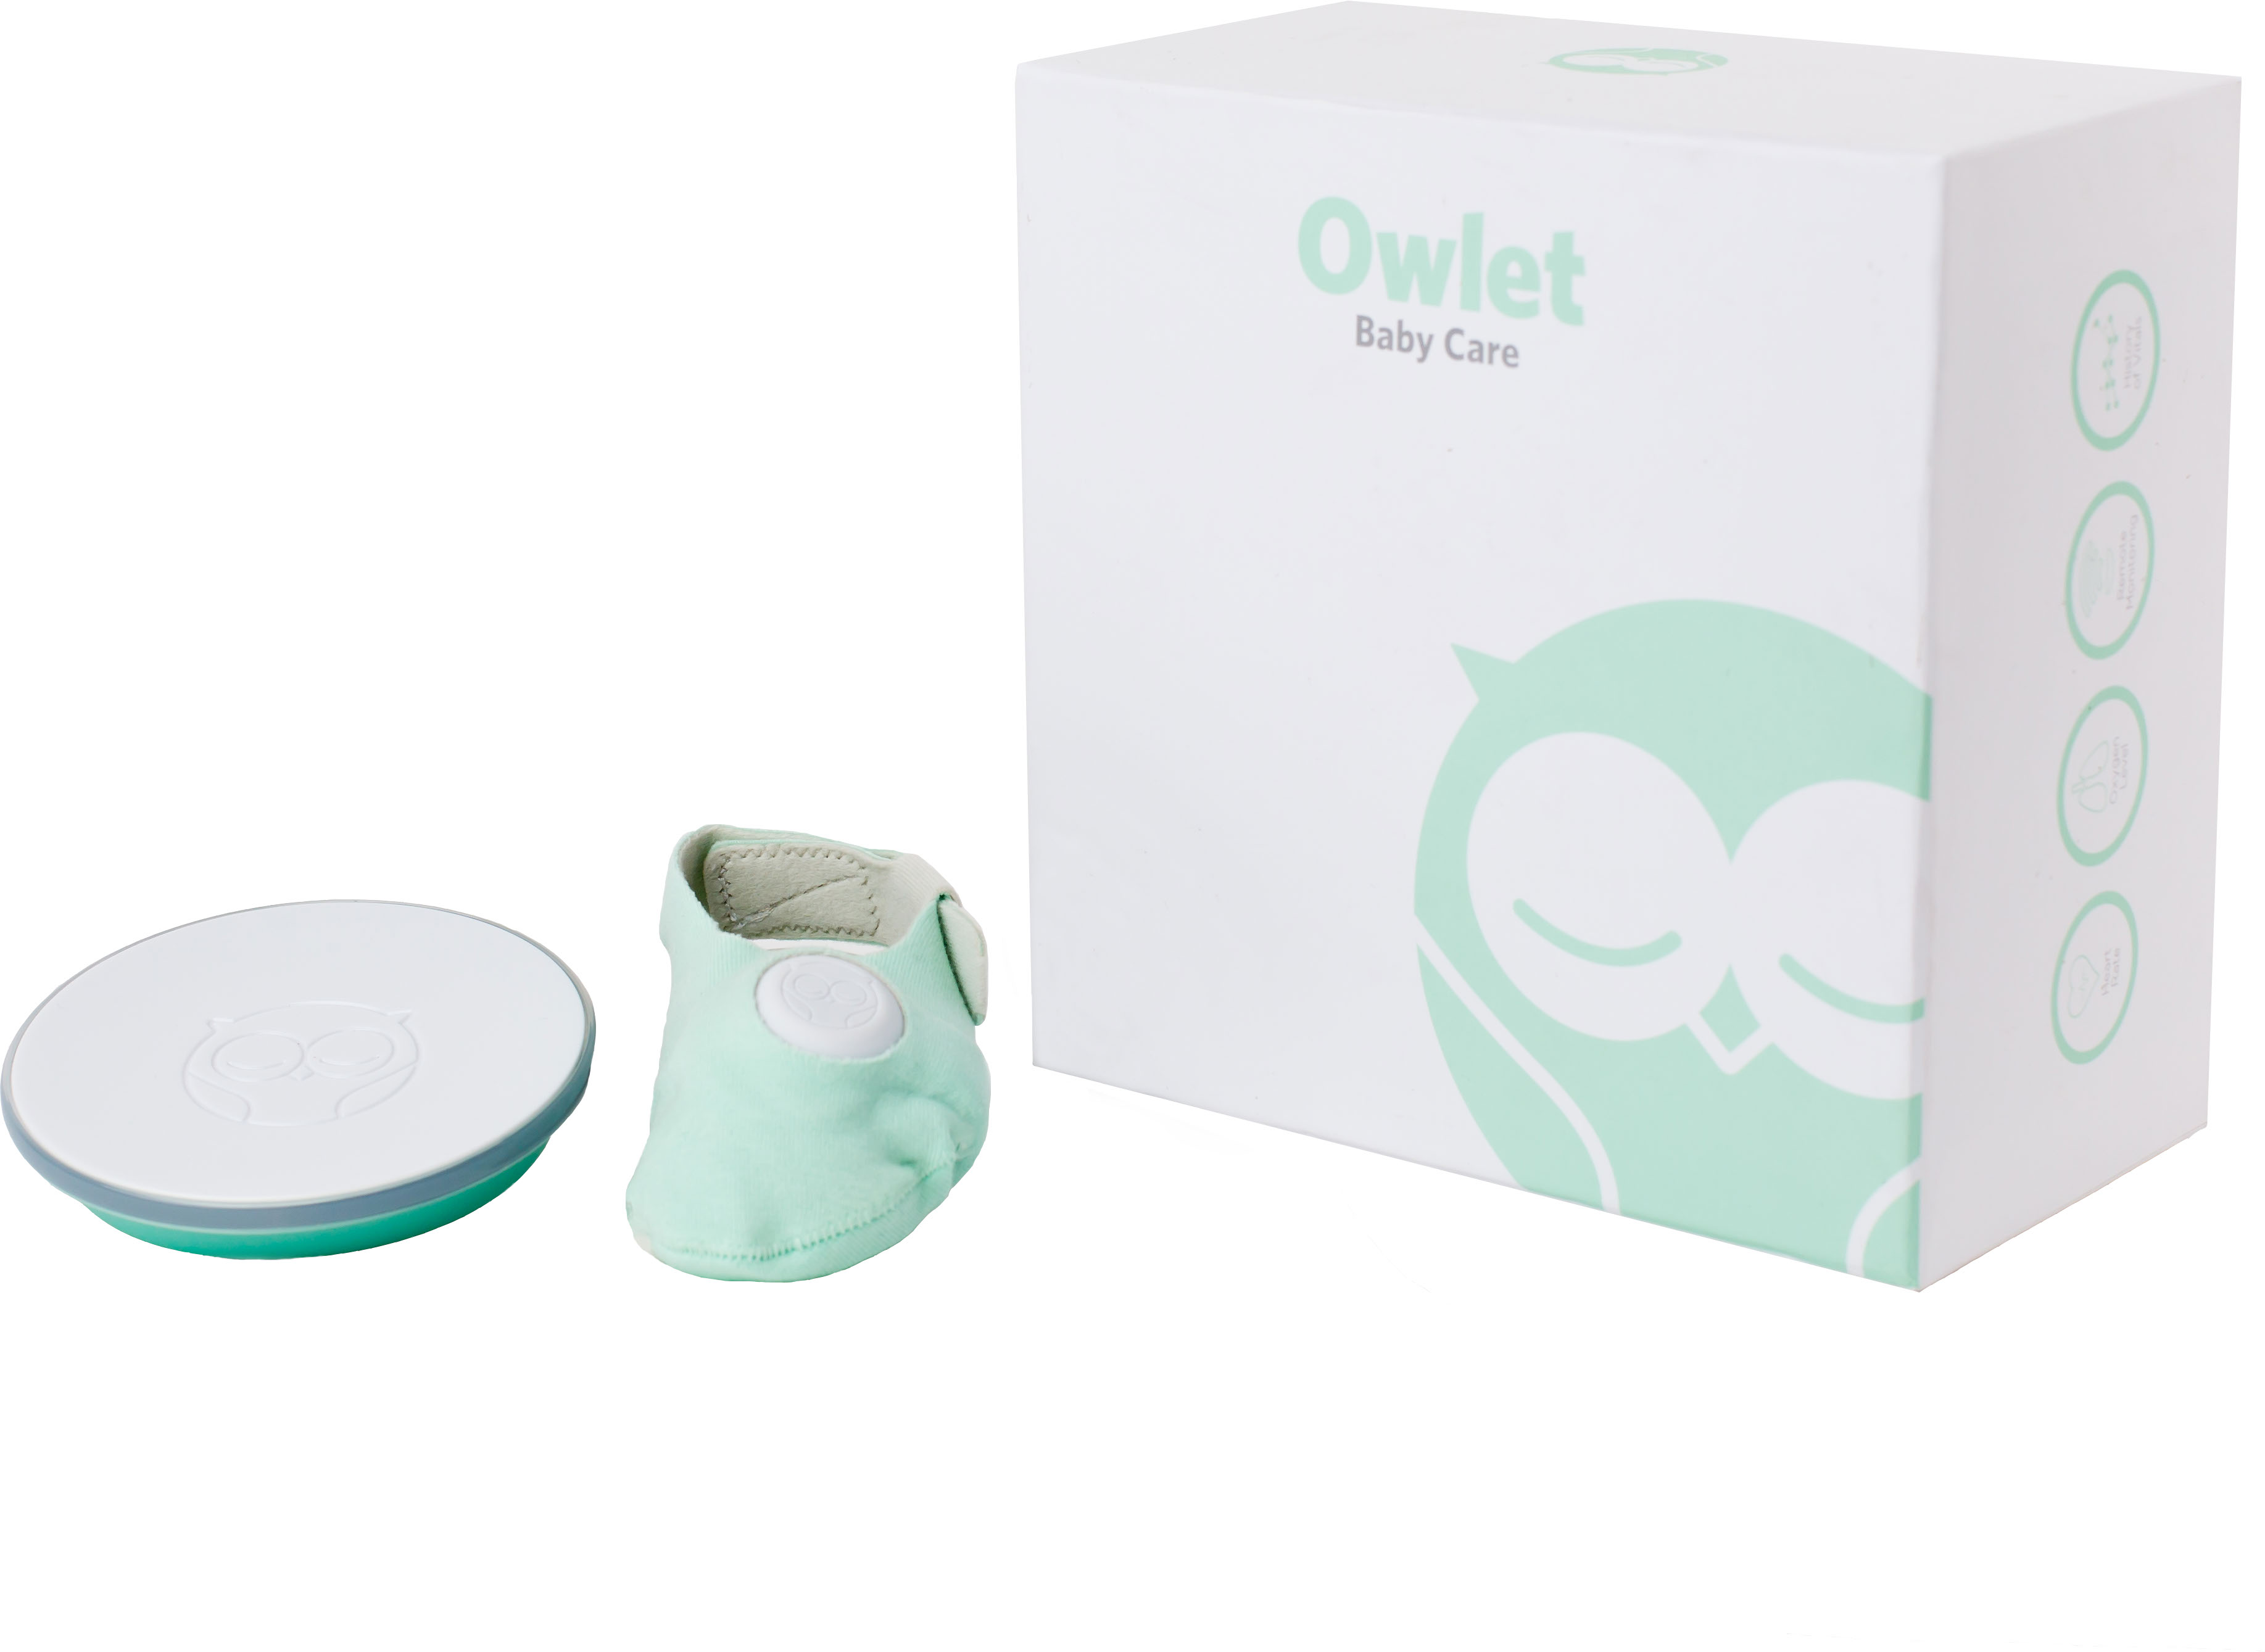 Owlet Baby Monitor - $249.00